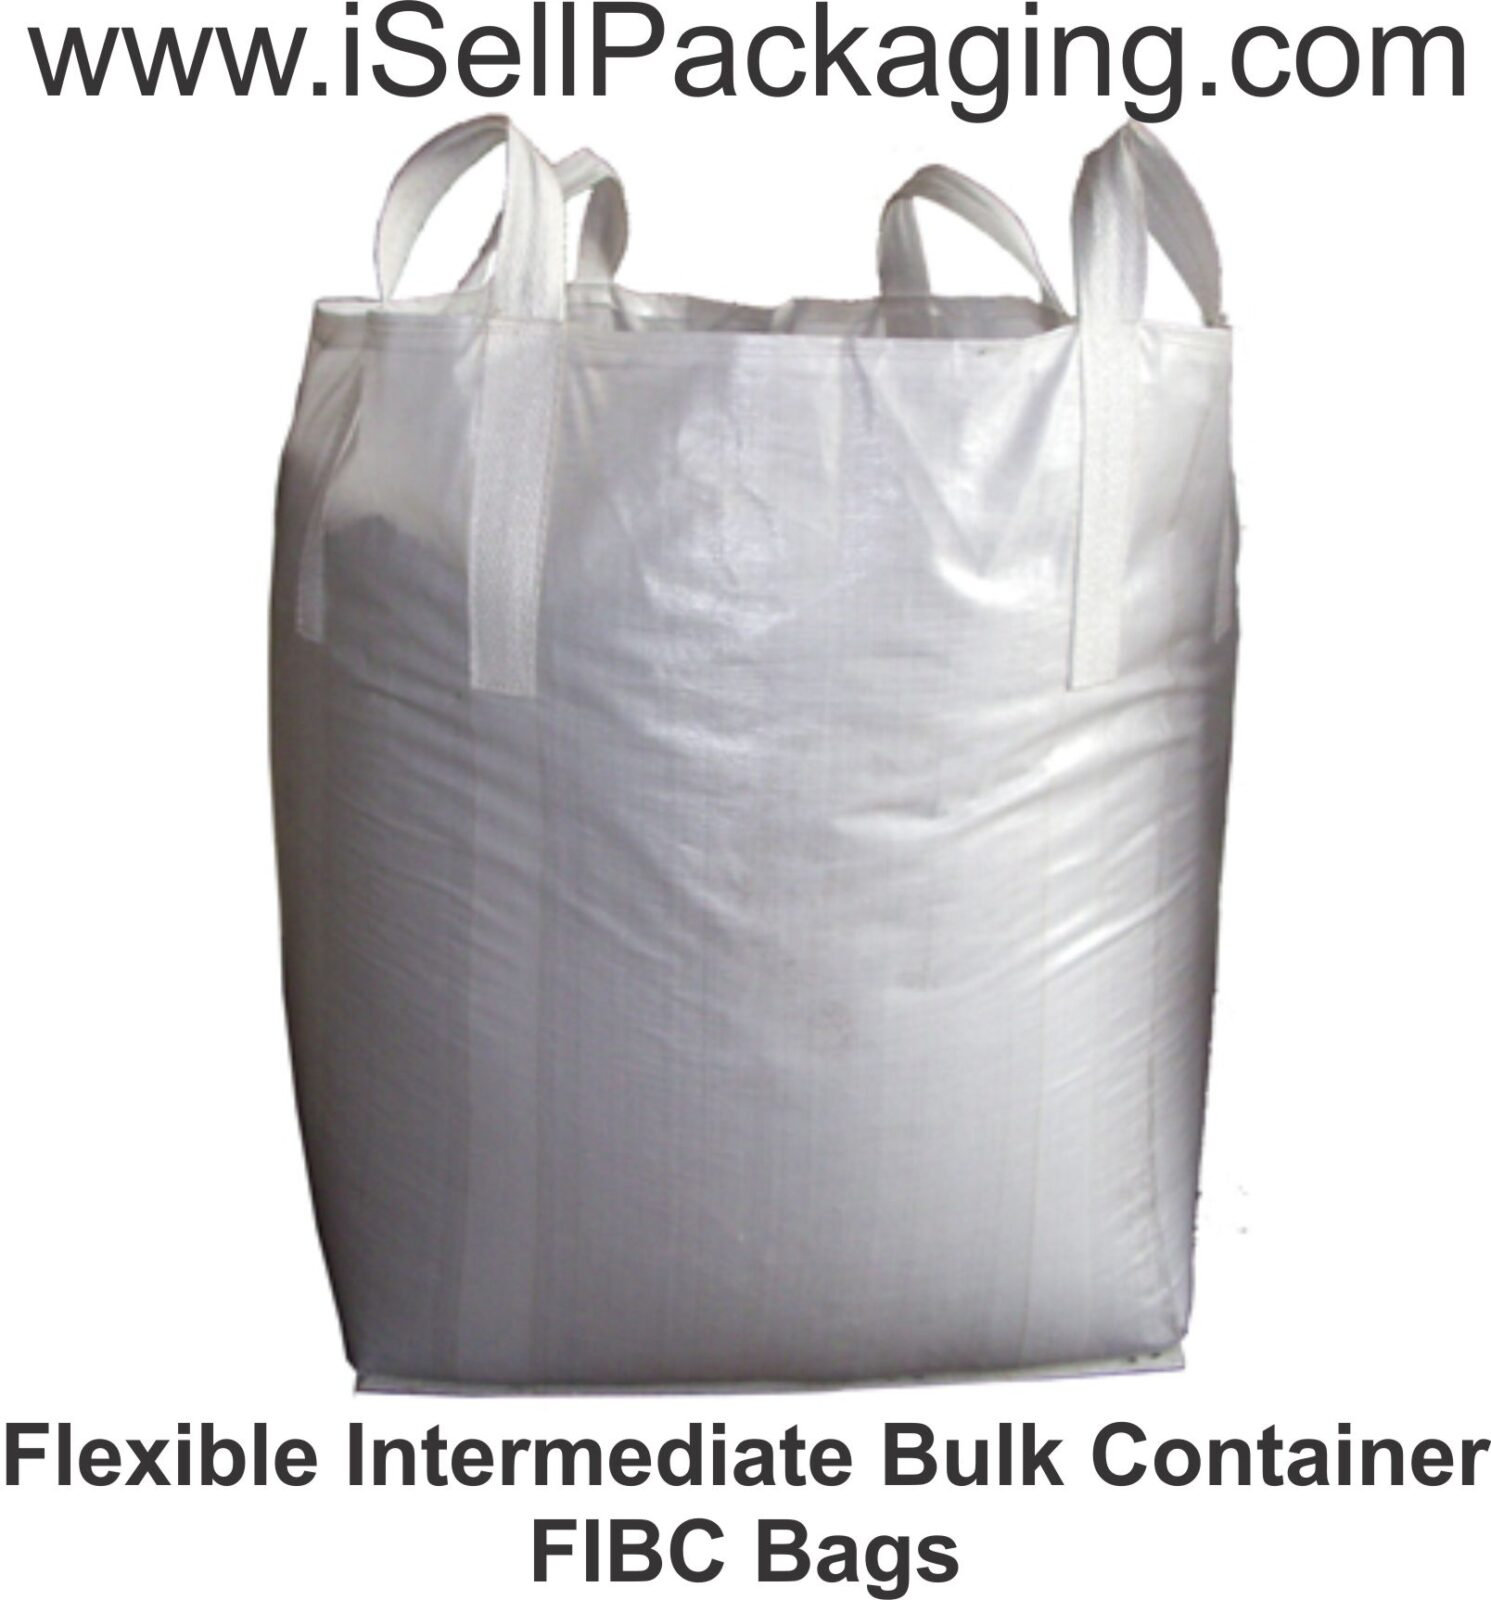 Flexible Intermediate Bulk Container And Trash Compactor Bale Bags